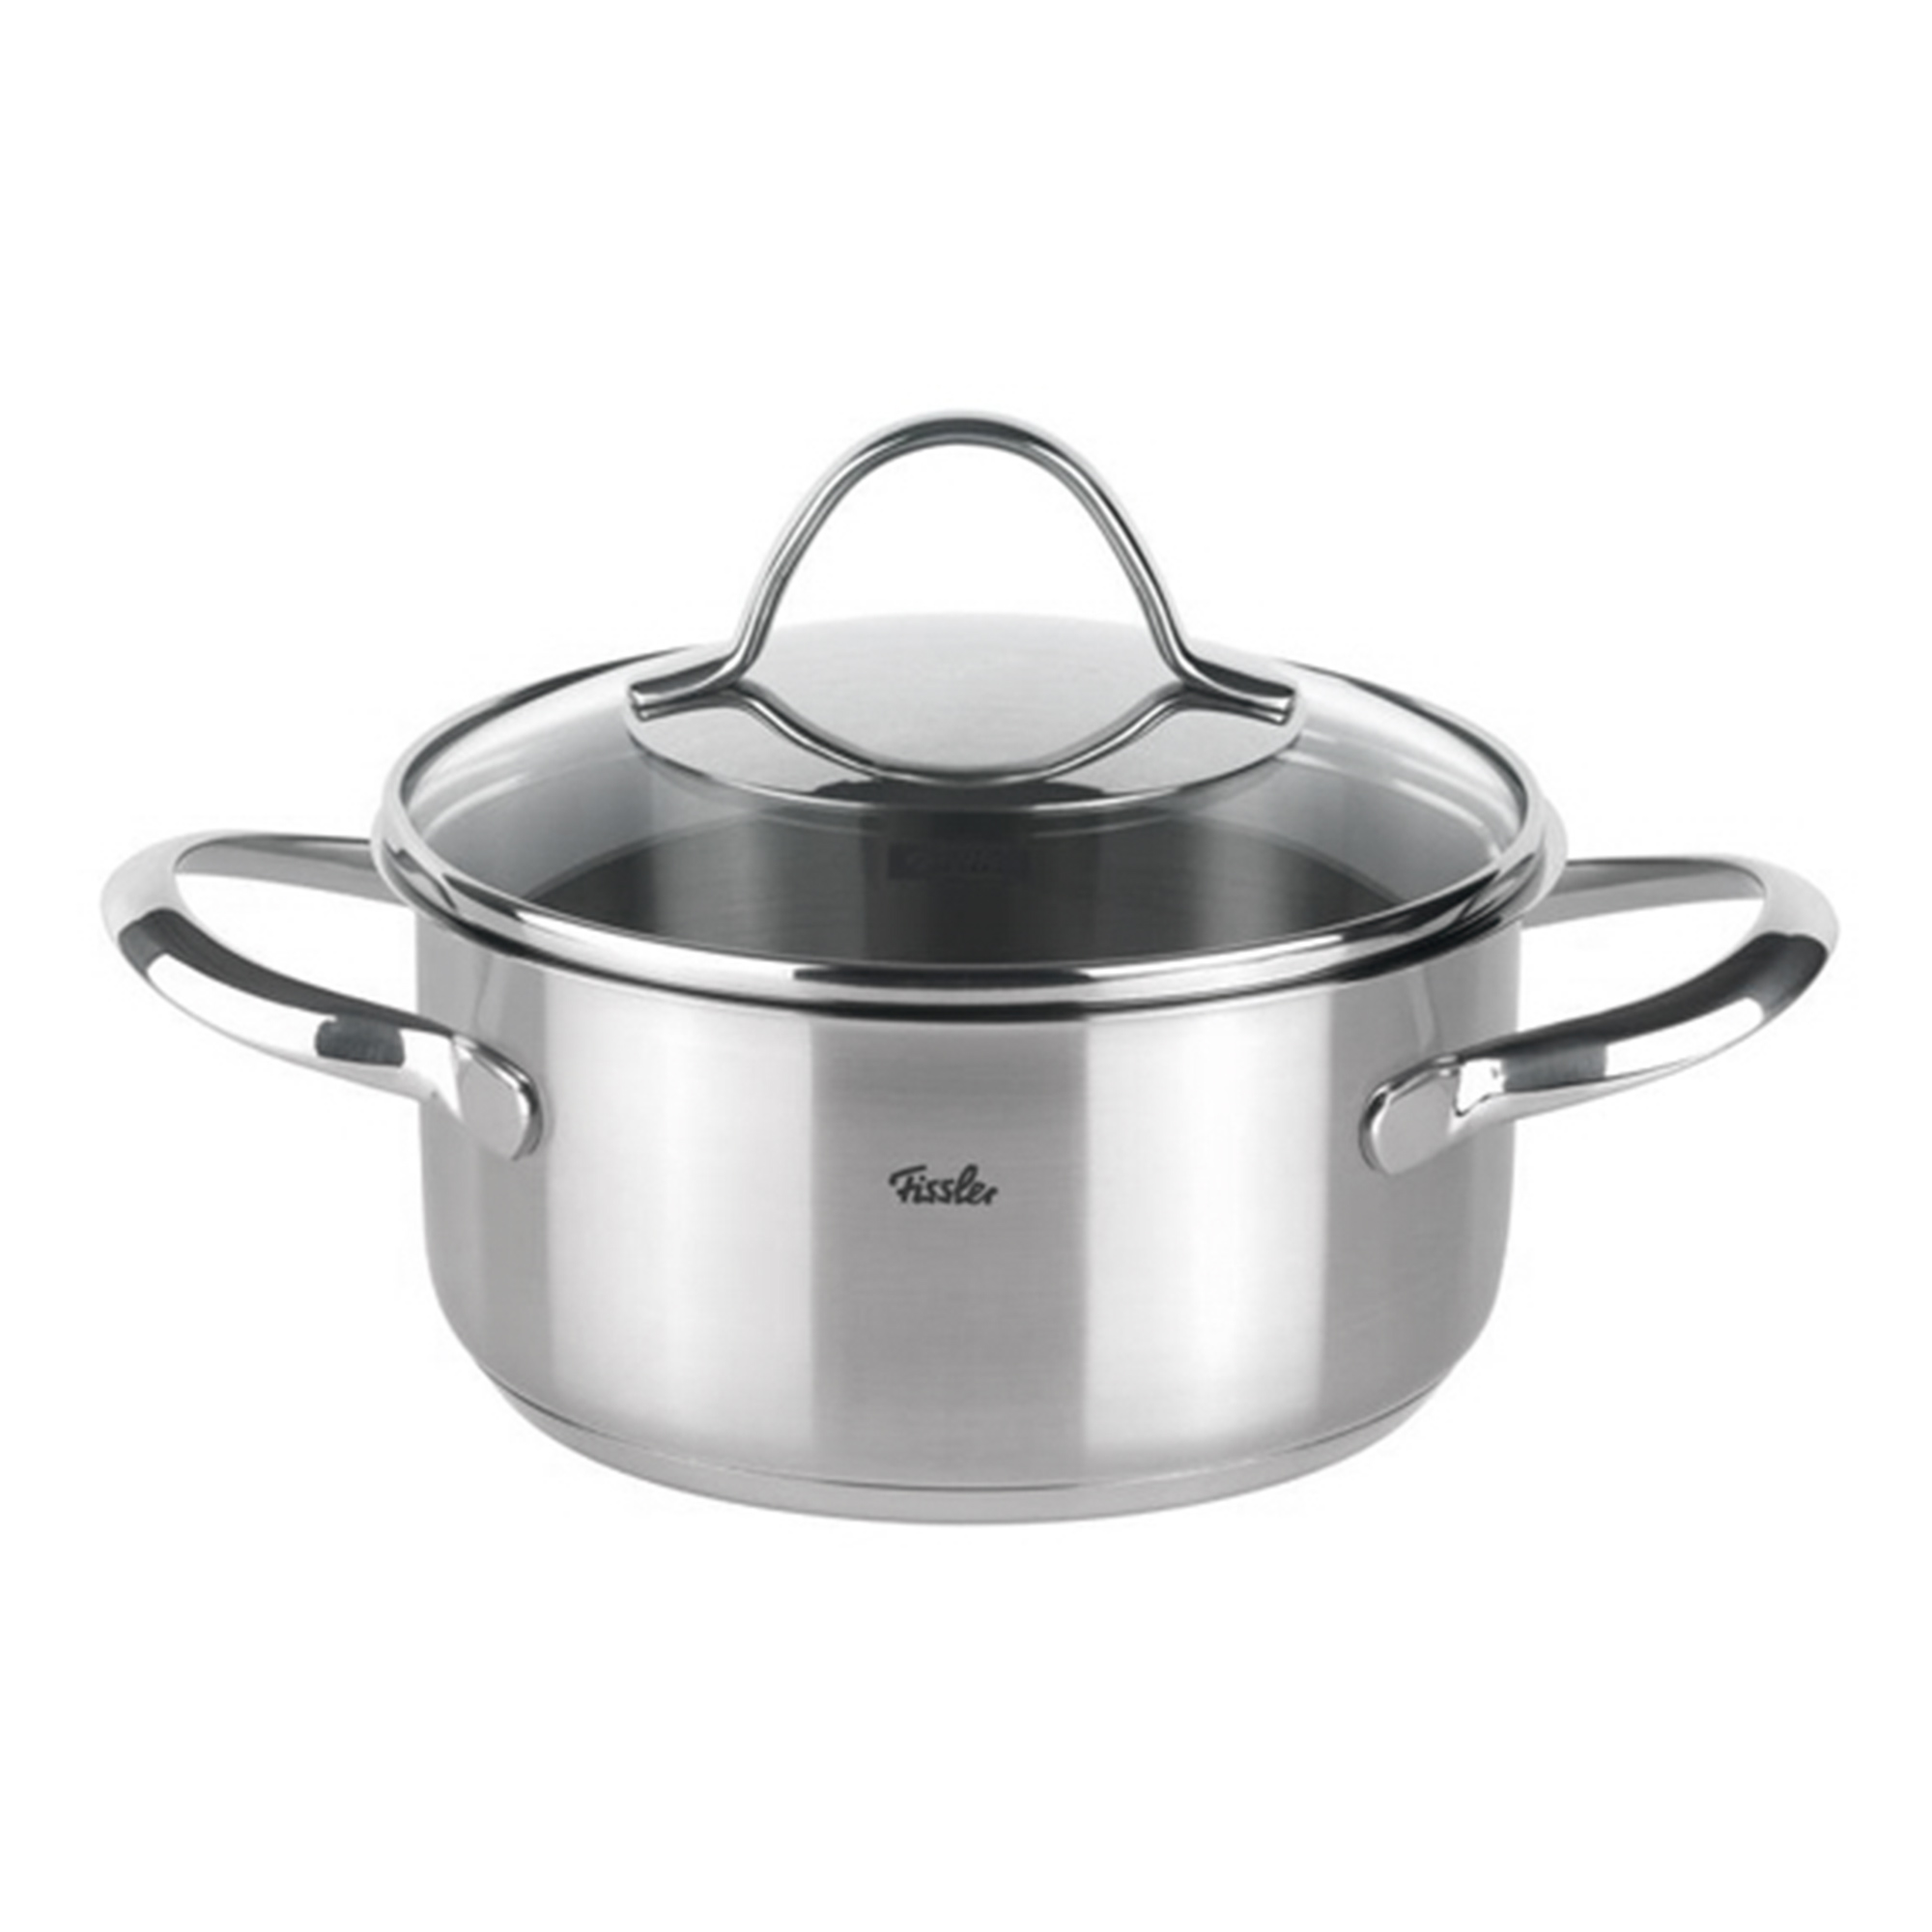 Купить Кастрюля Fissler Paris 16 см см 1, 4 л, Серебристый